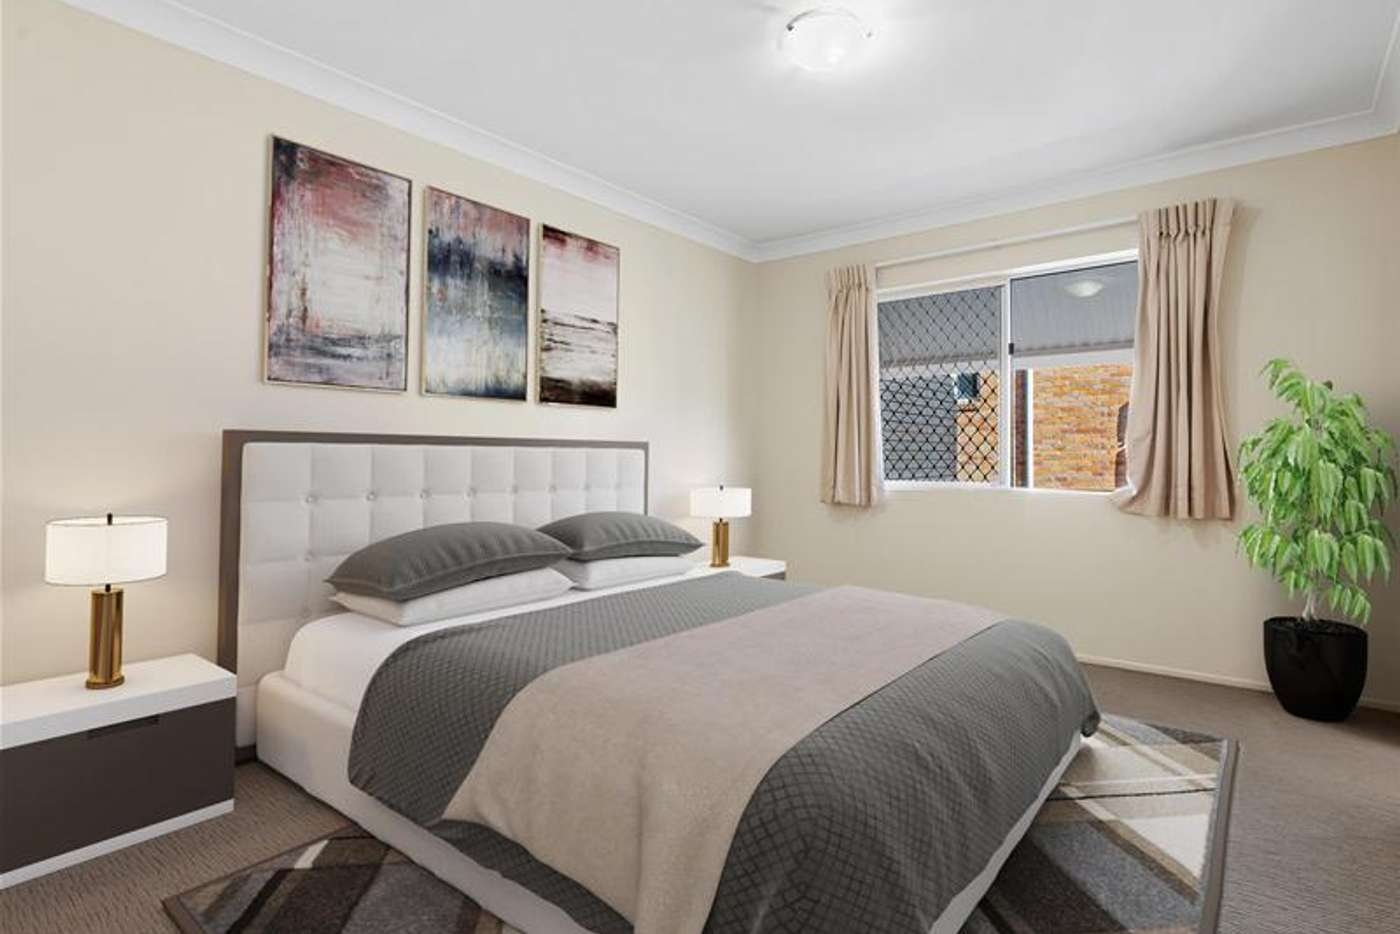 Fifth view of Homely apartment listing, 17/22 Warren Street, St Lucia QLD 4067